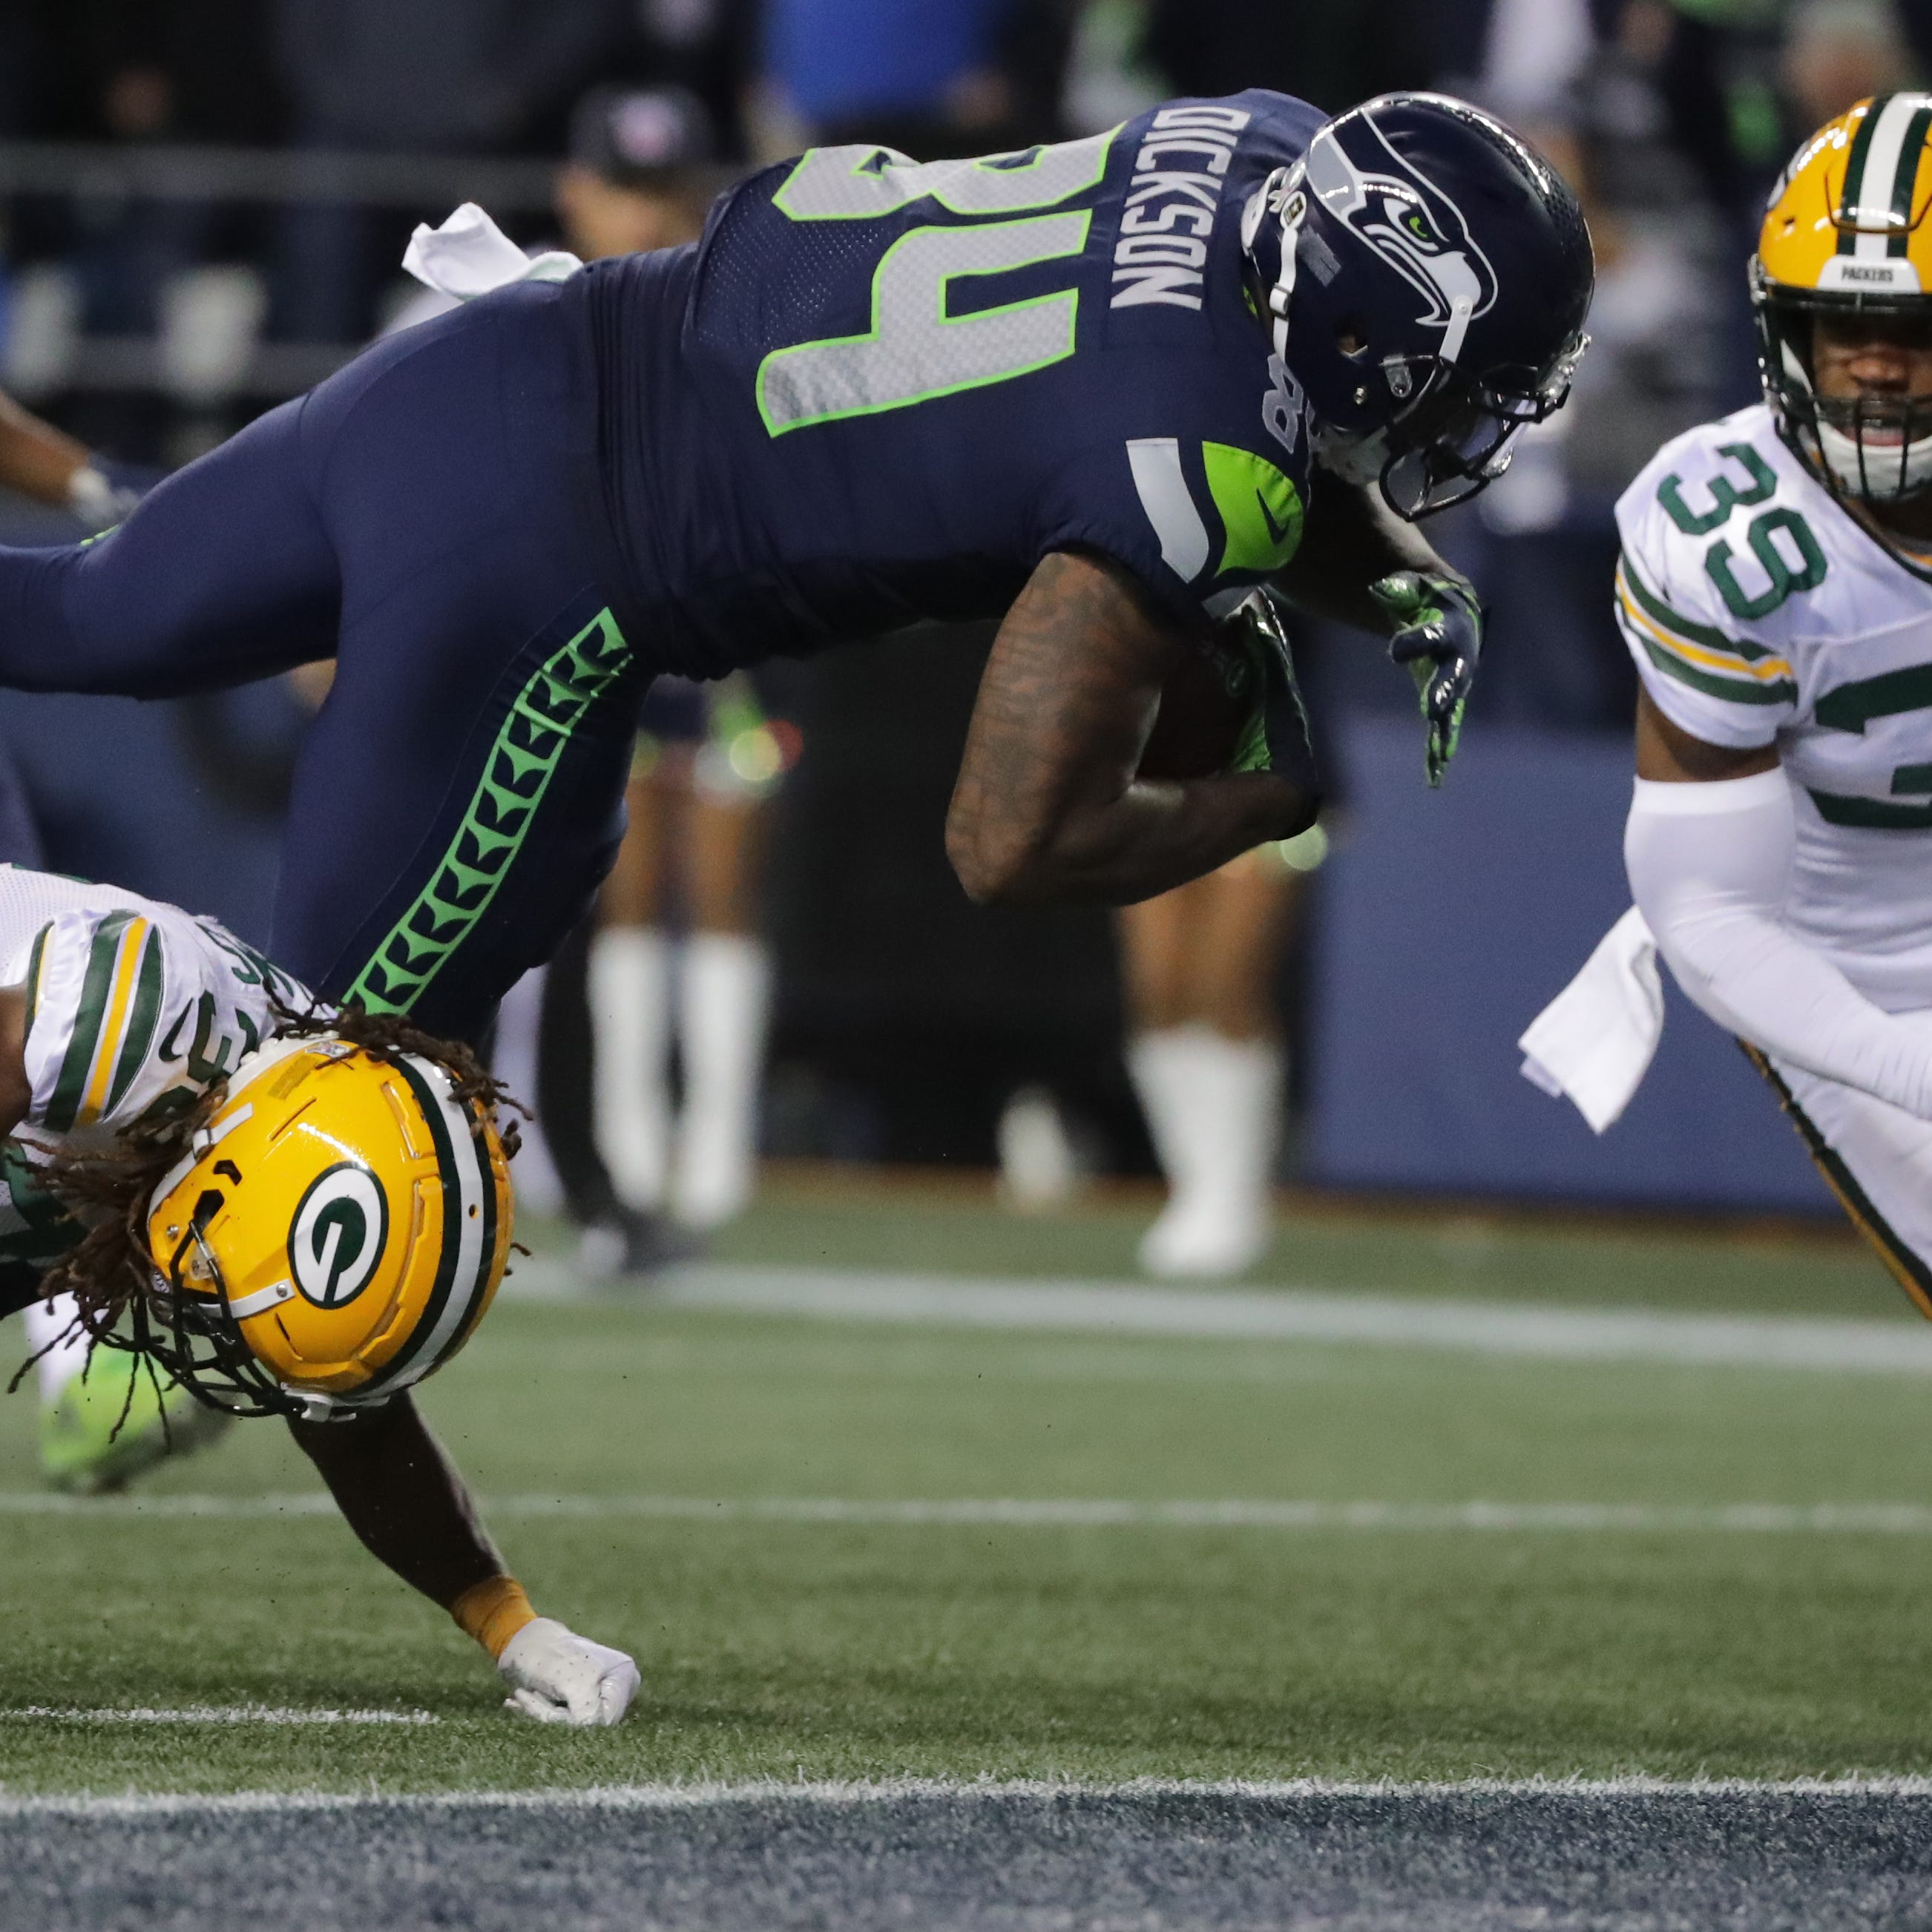 Packers nearing dubious distinction with dismal 0-5 road record